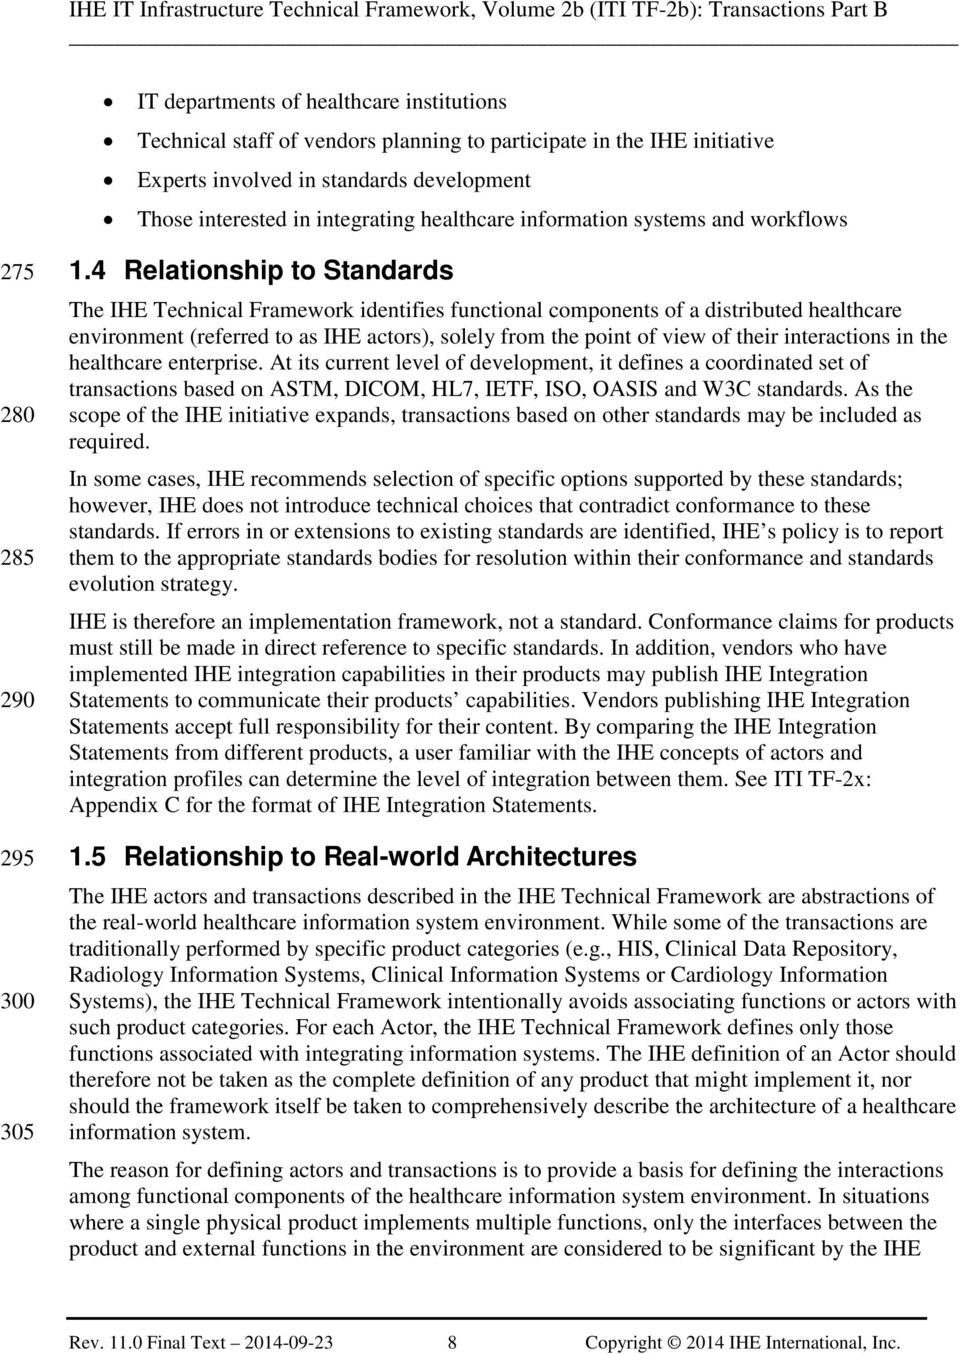 4 Relationship to Standards The IHE Technical Framework identifies functional components of a distributed healthcare environment (referred to as IHE actors), solely from the point of view of their